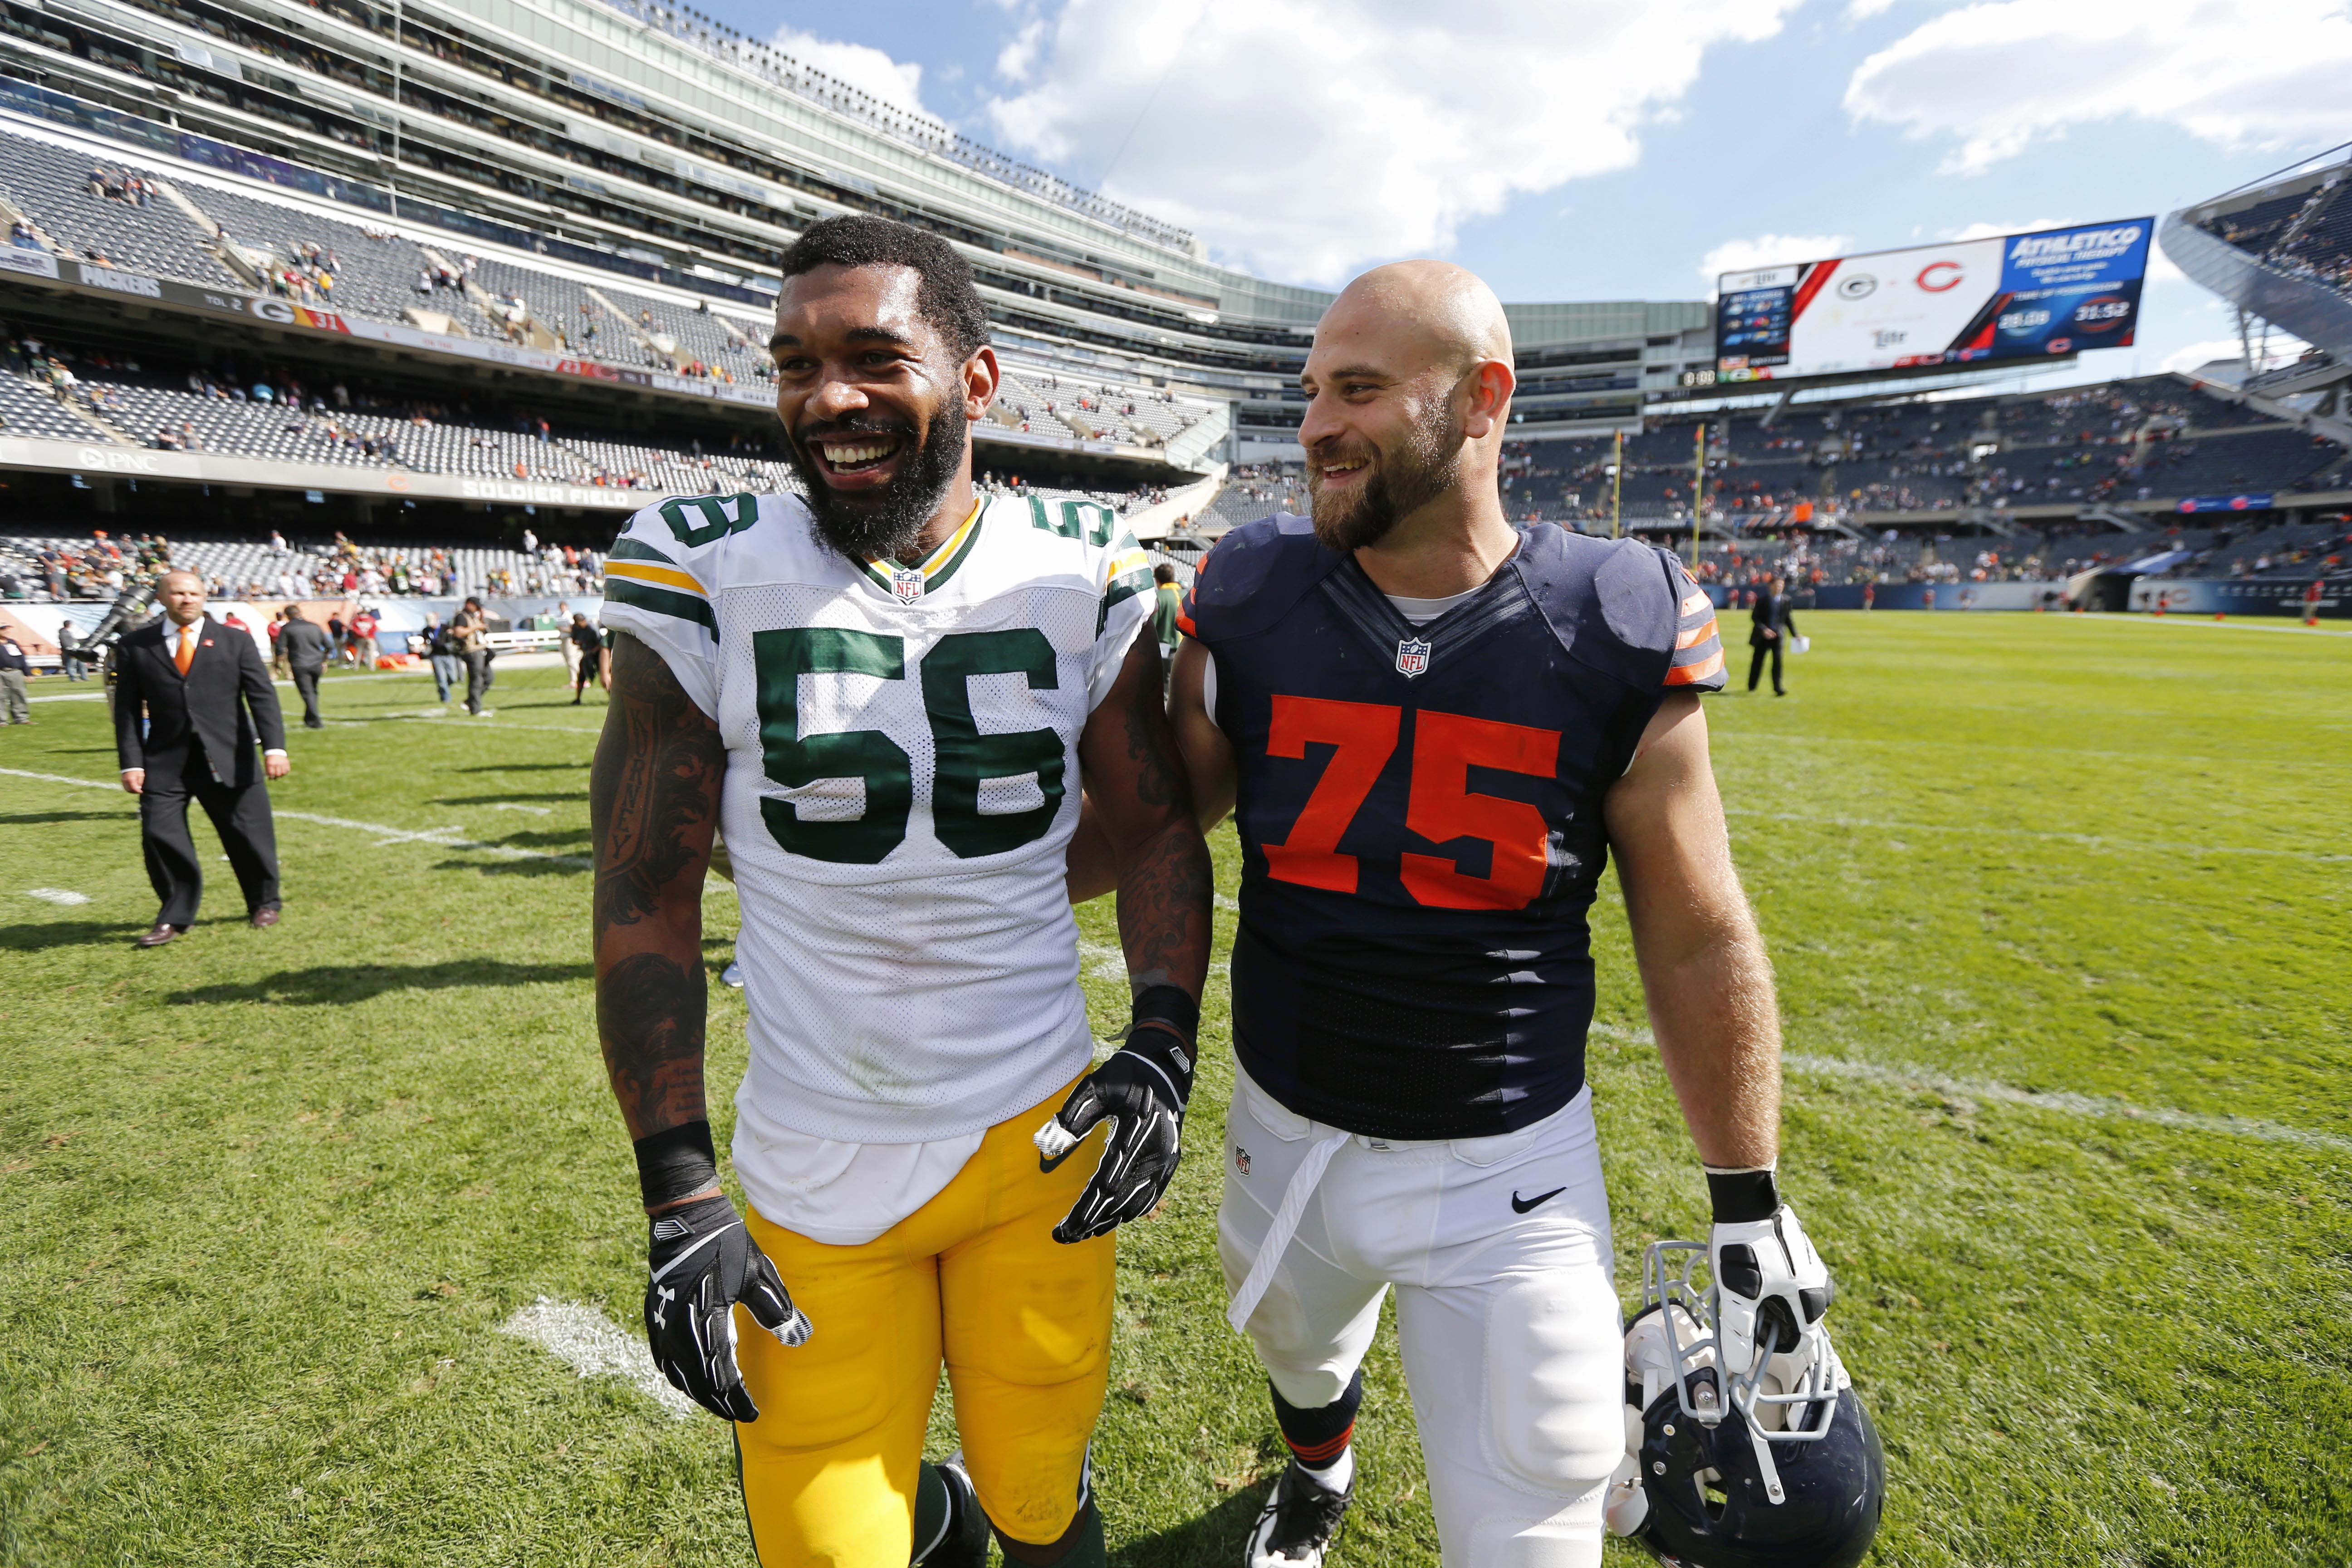 Green Bay Packers outside linebacker Julius Peppers (56) and Chicago Bears guard Kyle Long (75) share laughs after their NFL football game, Sunday, Sept. 13, 2015, in Chicago. The Packers won 31-23. (AP Photo/Charles Rex Arbogast)